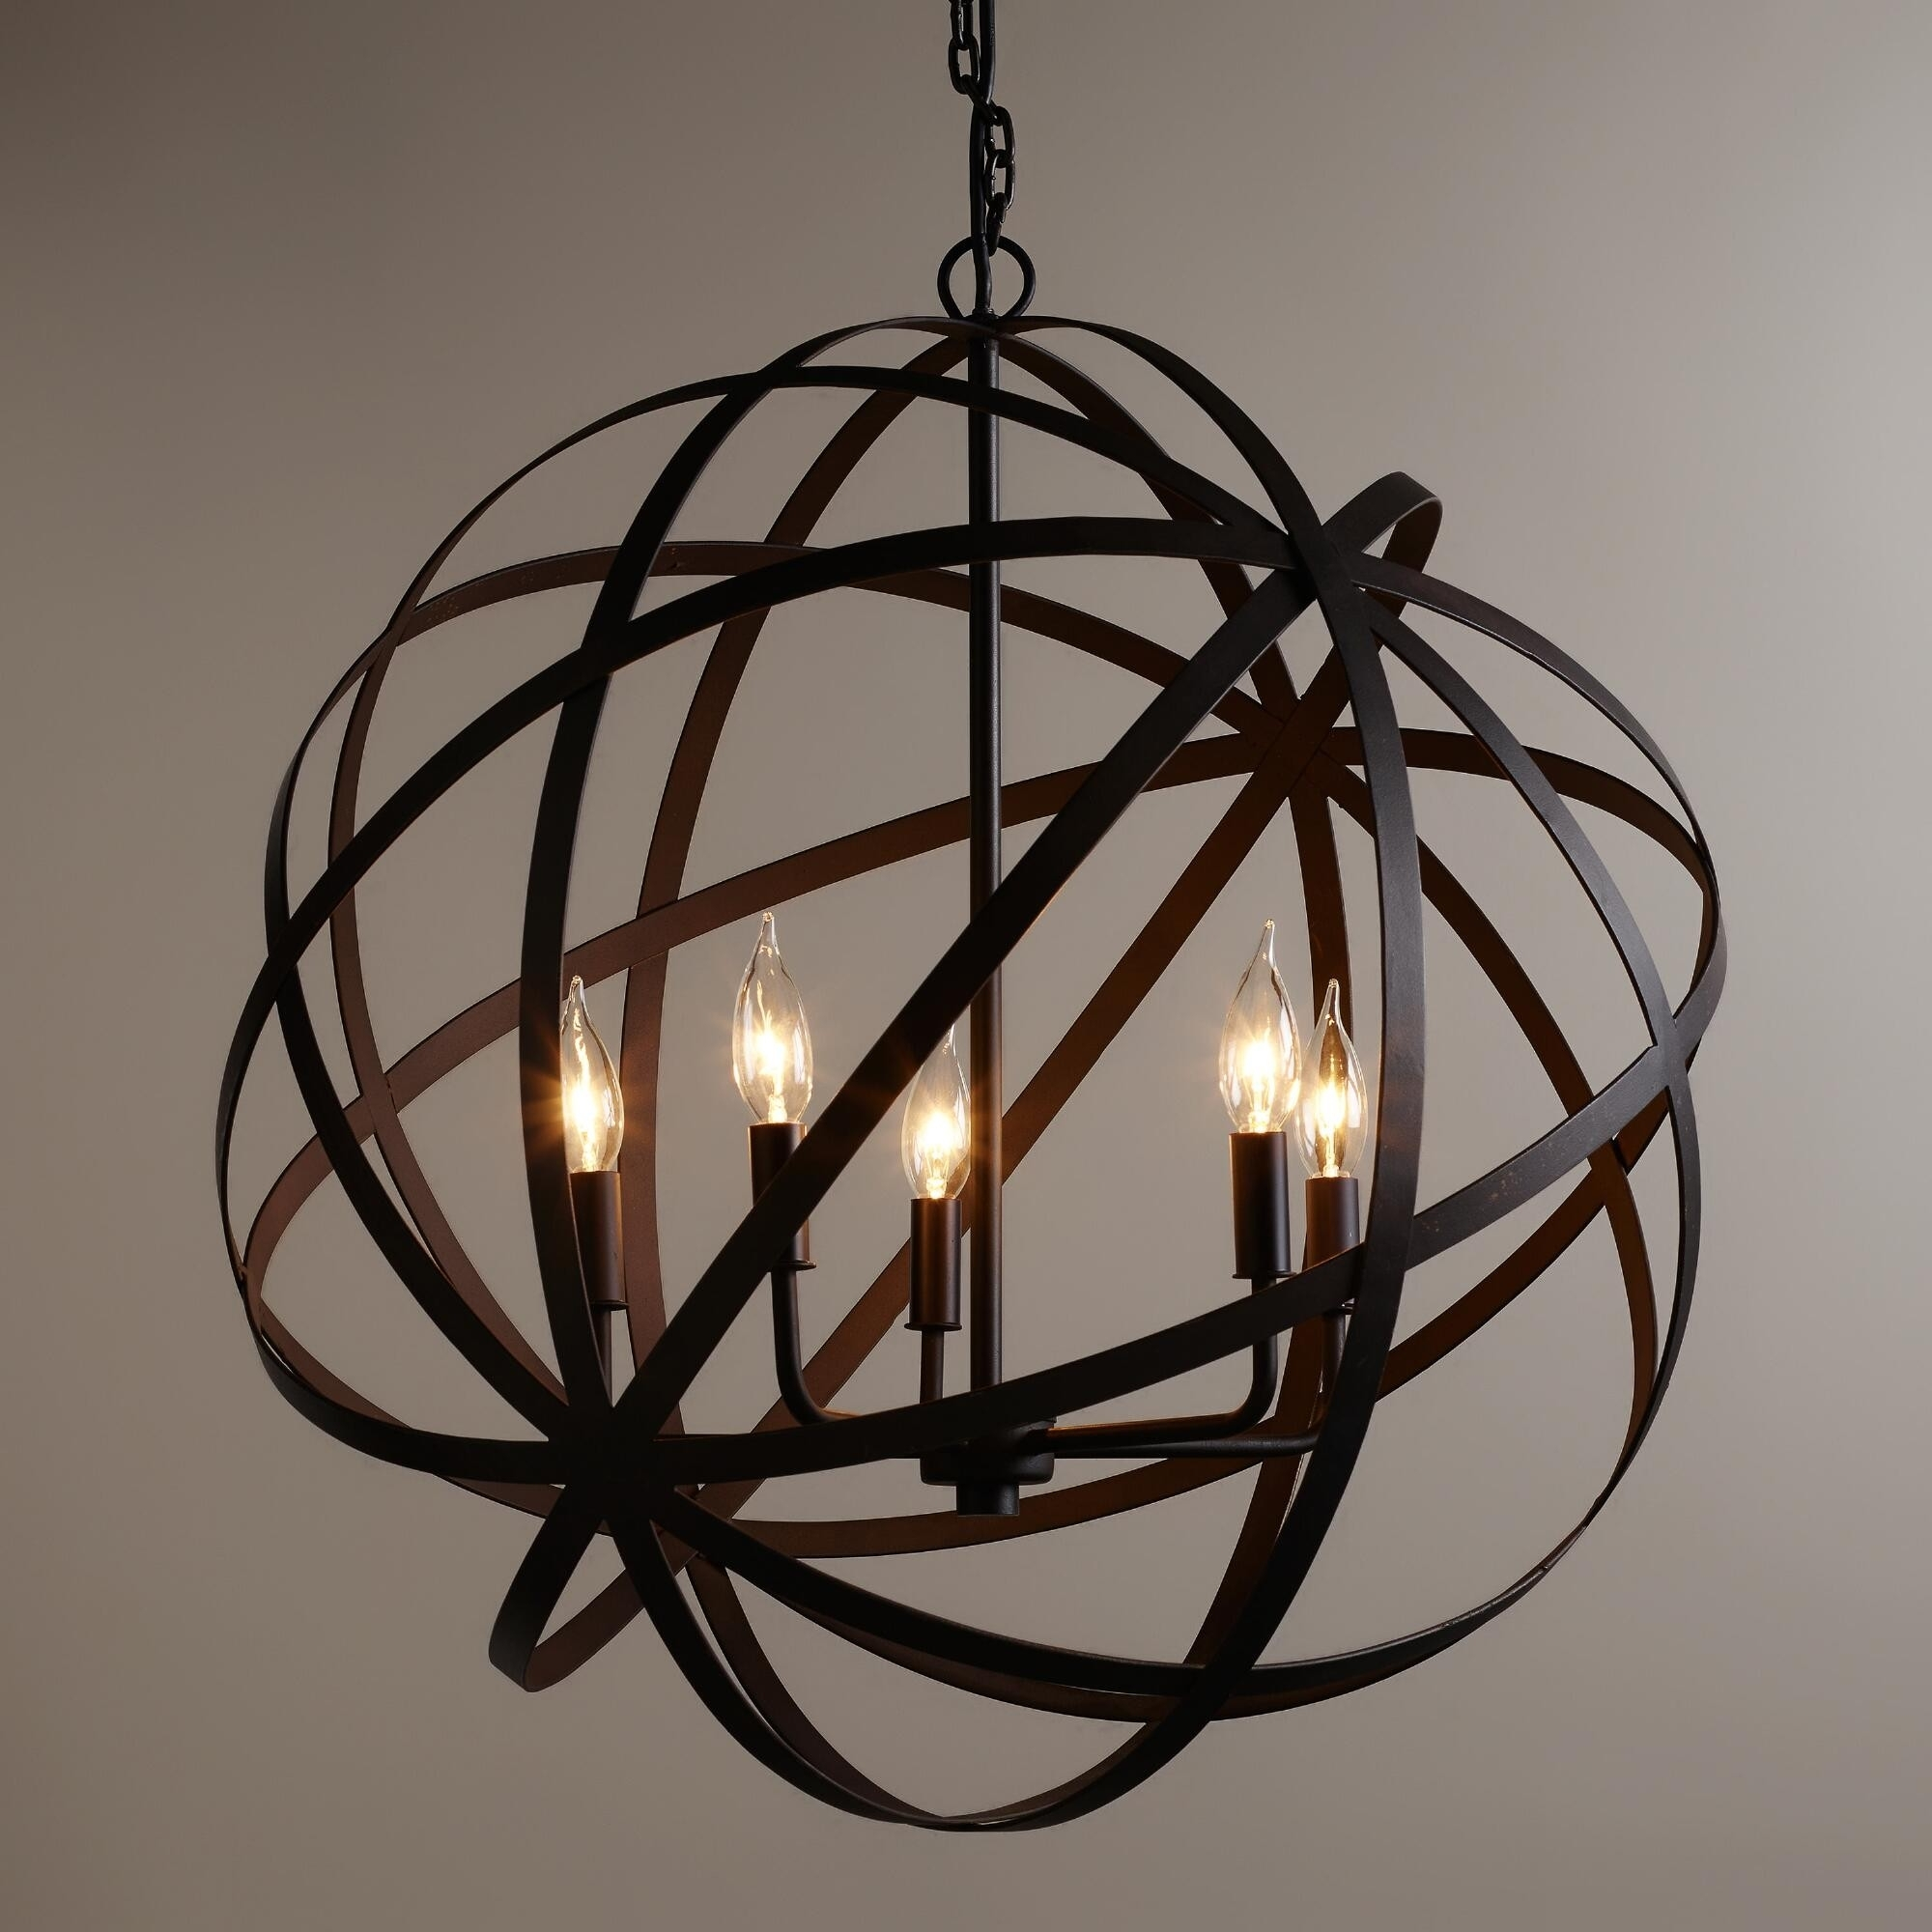 Extra Large Outdoor Chandeliers : Lamp World With Regard To Famous Contemporary Large Chandeliers (View 11 of 15)